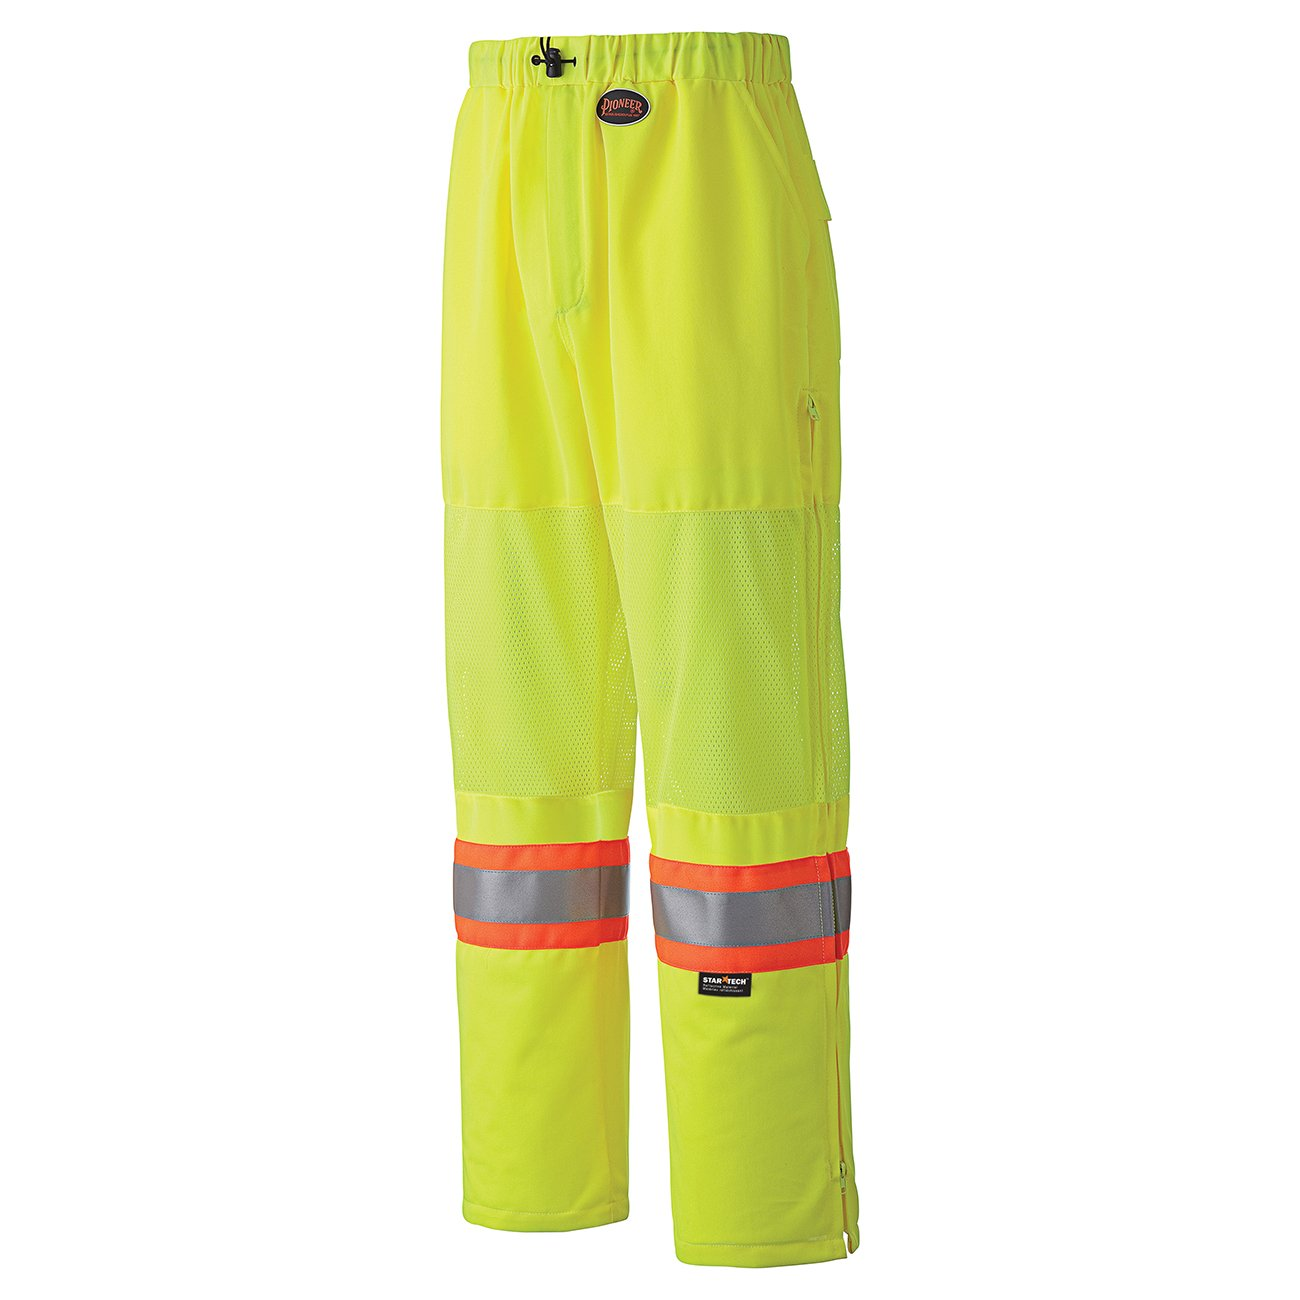 Pioneer Hi-Viz Traffic Safety Pant V1070360 - 5999P